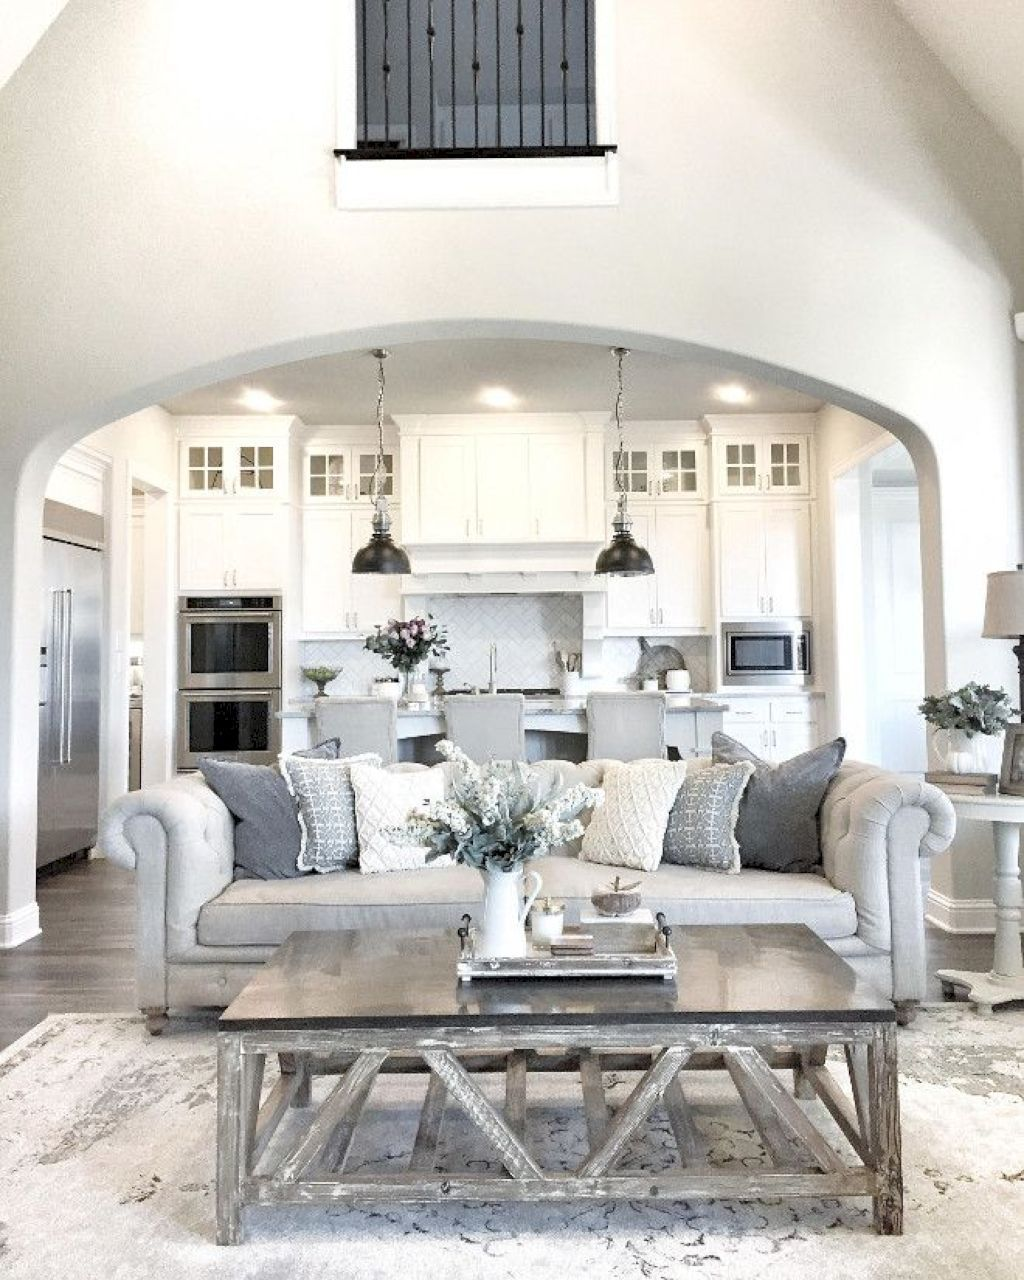 Farmhouse Living Room Ideas   For The Summer And Late Summer Complete With  Large Farmhouse Signs, Ceramic, Rustic Timber, And Fresh Lilac Cuttings.